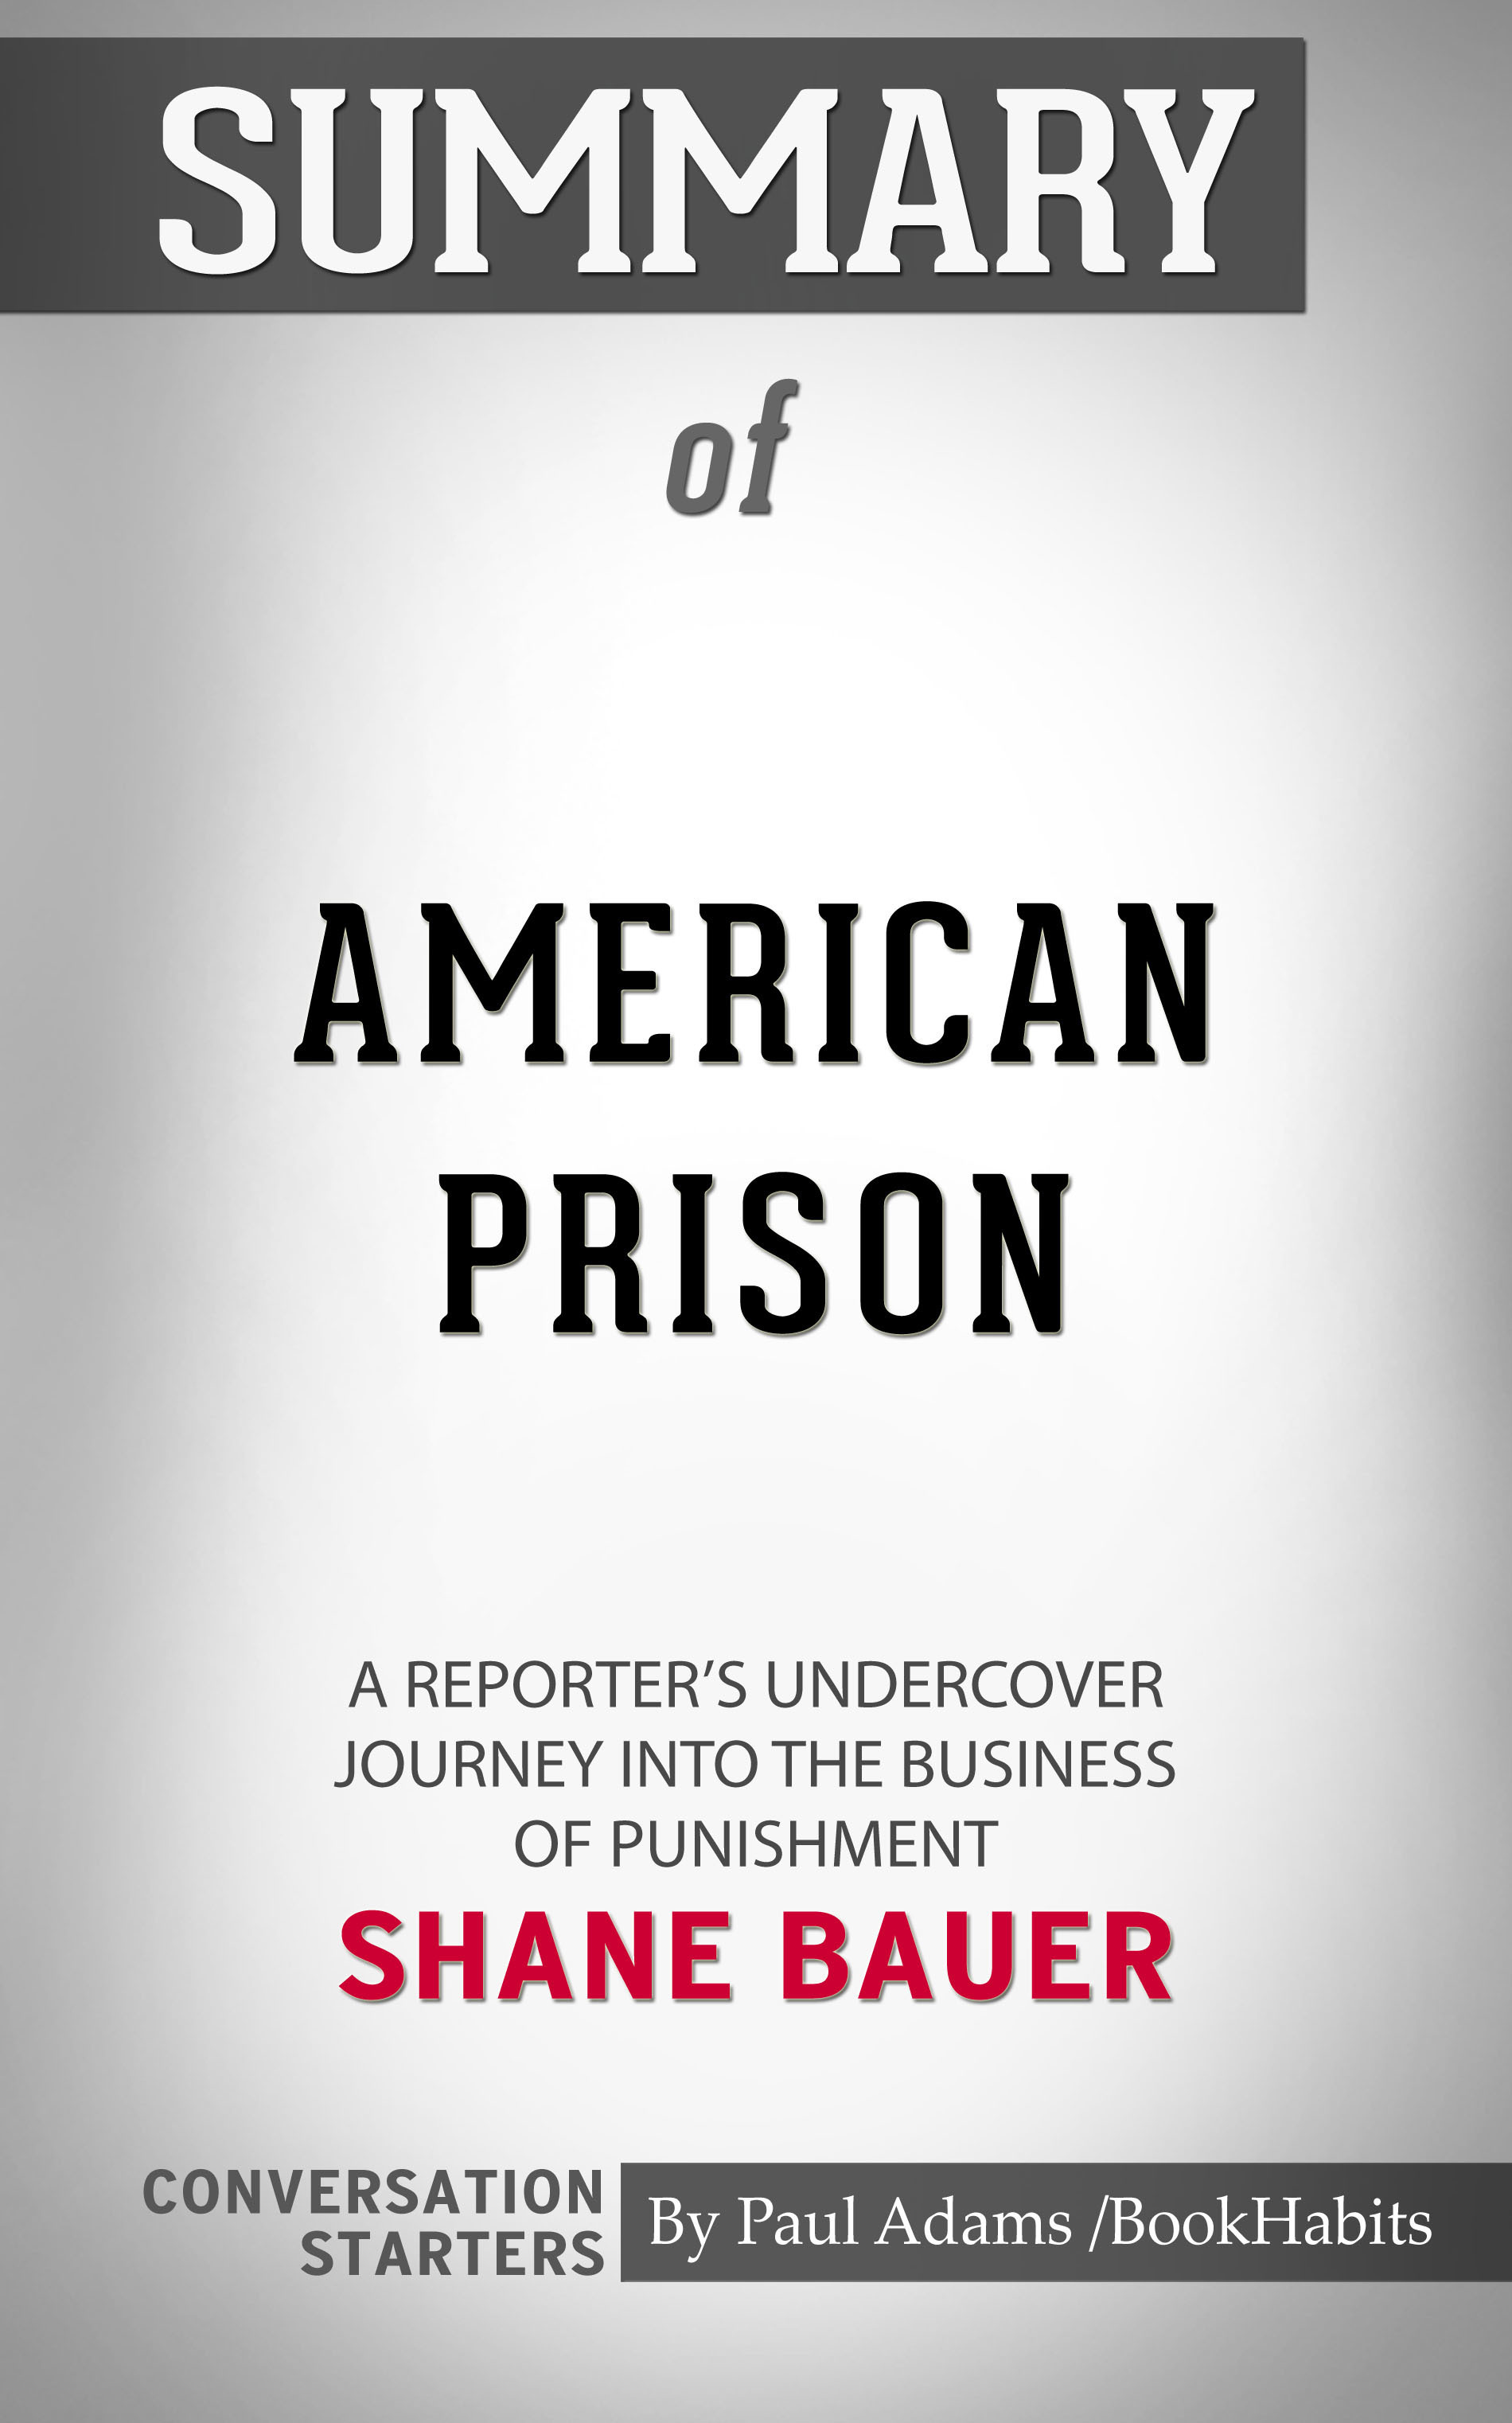 Summary of American Prison: A Reporter's Undercover Journey into the Business of Punishment by Shane Bauer | Conversation Starters